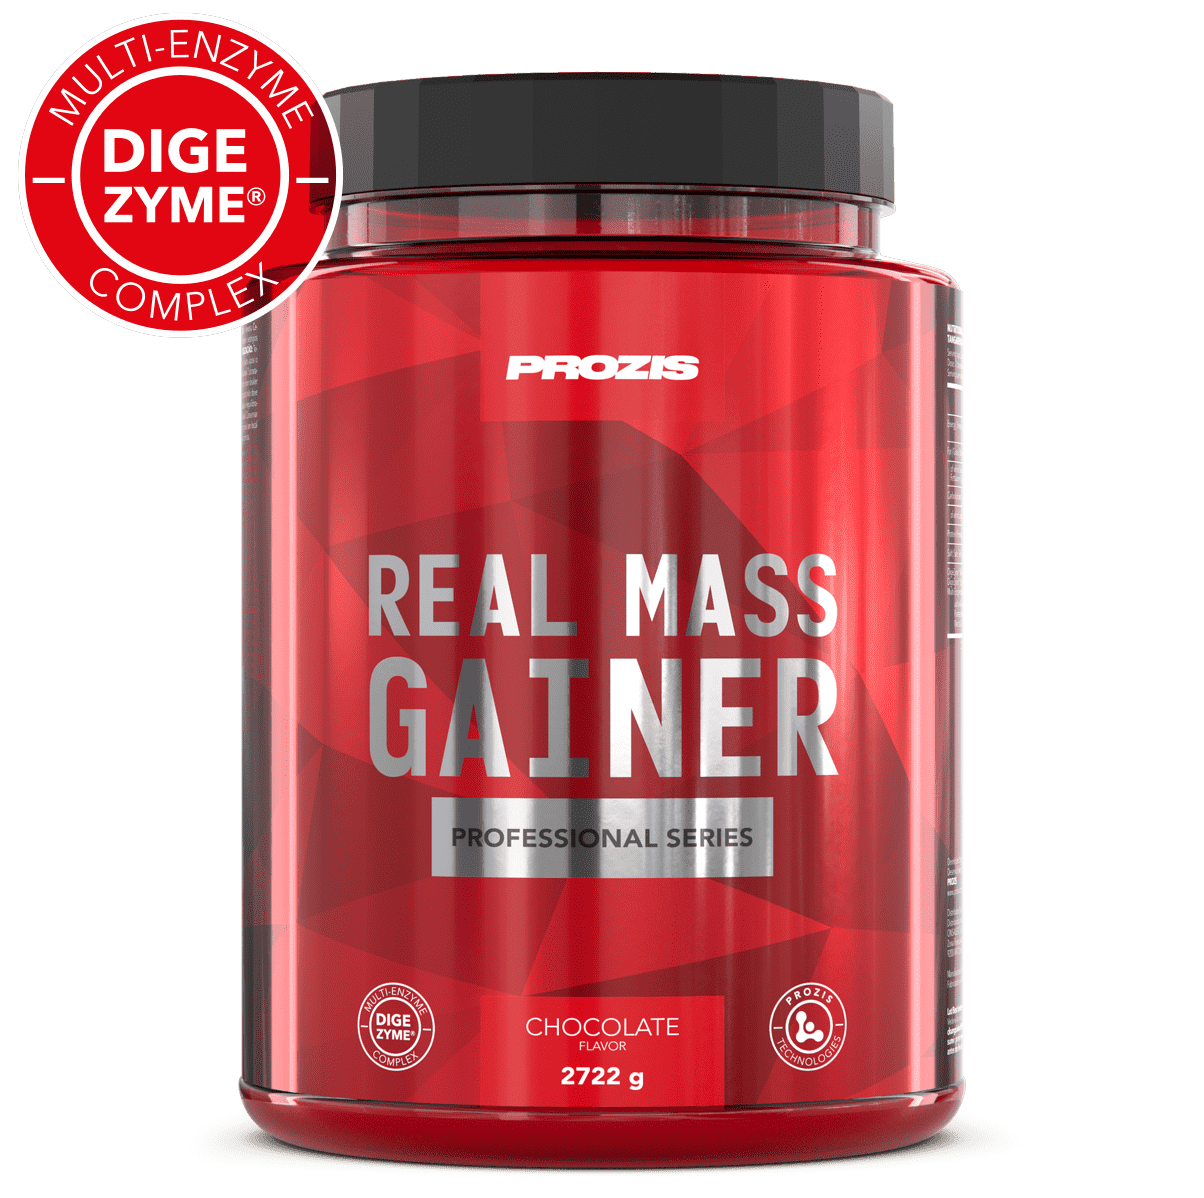 Real Mass Gainer Professional 2722g